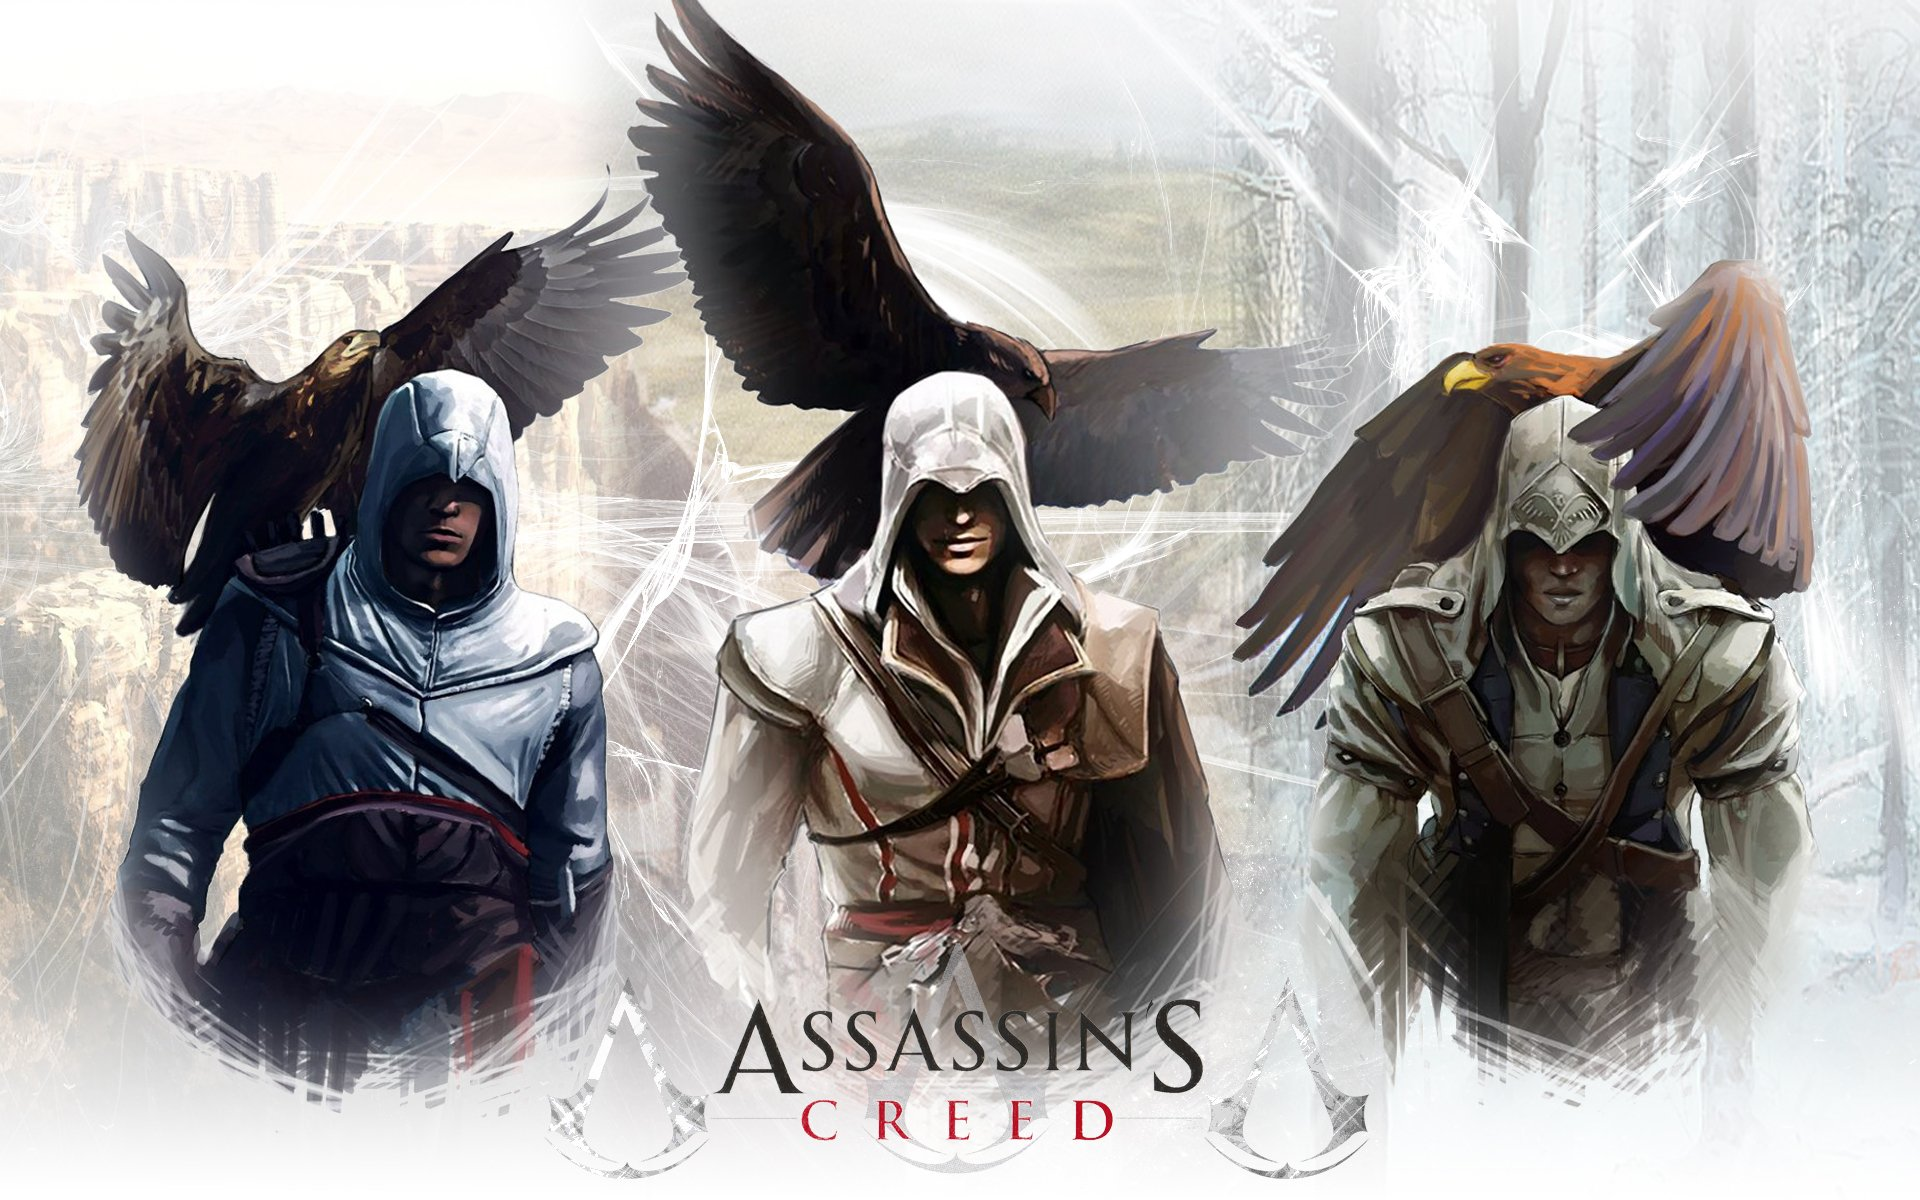 Free Download Assassins Creed Wallpaper Altair Ibn La Ahad Altair